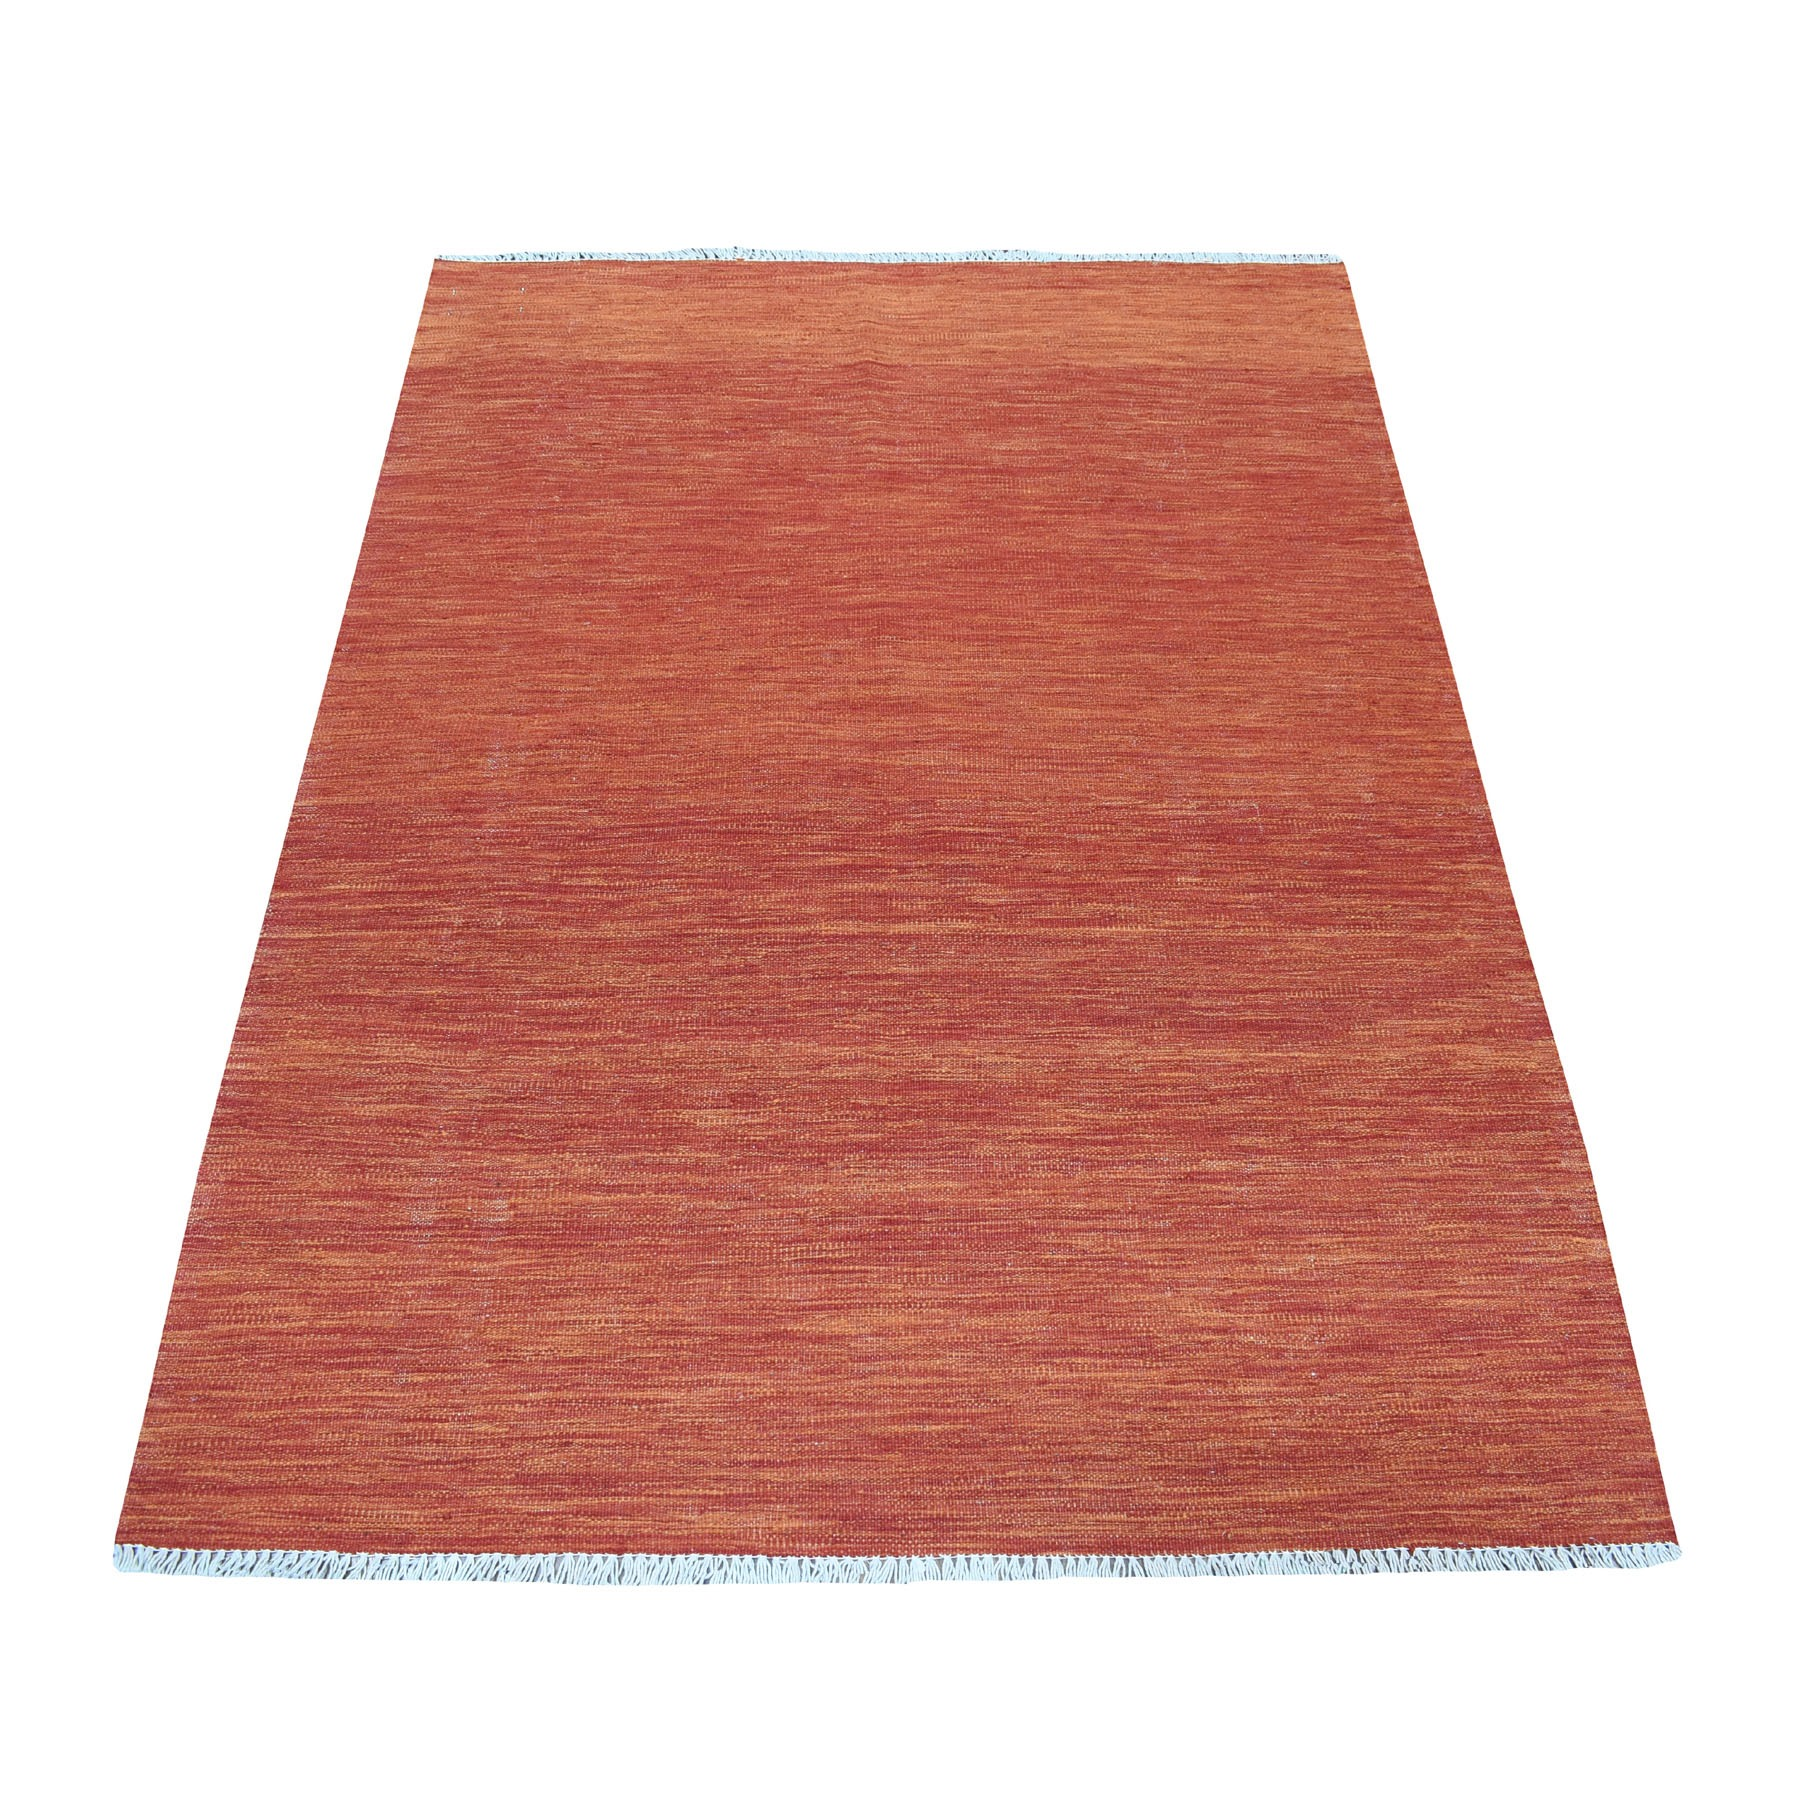 Fine Kilim Collection Hand Woven Red Rug No: 01108464